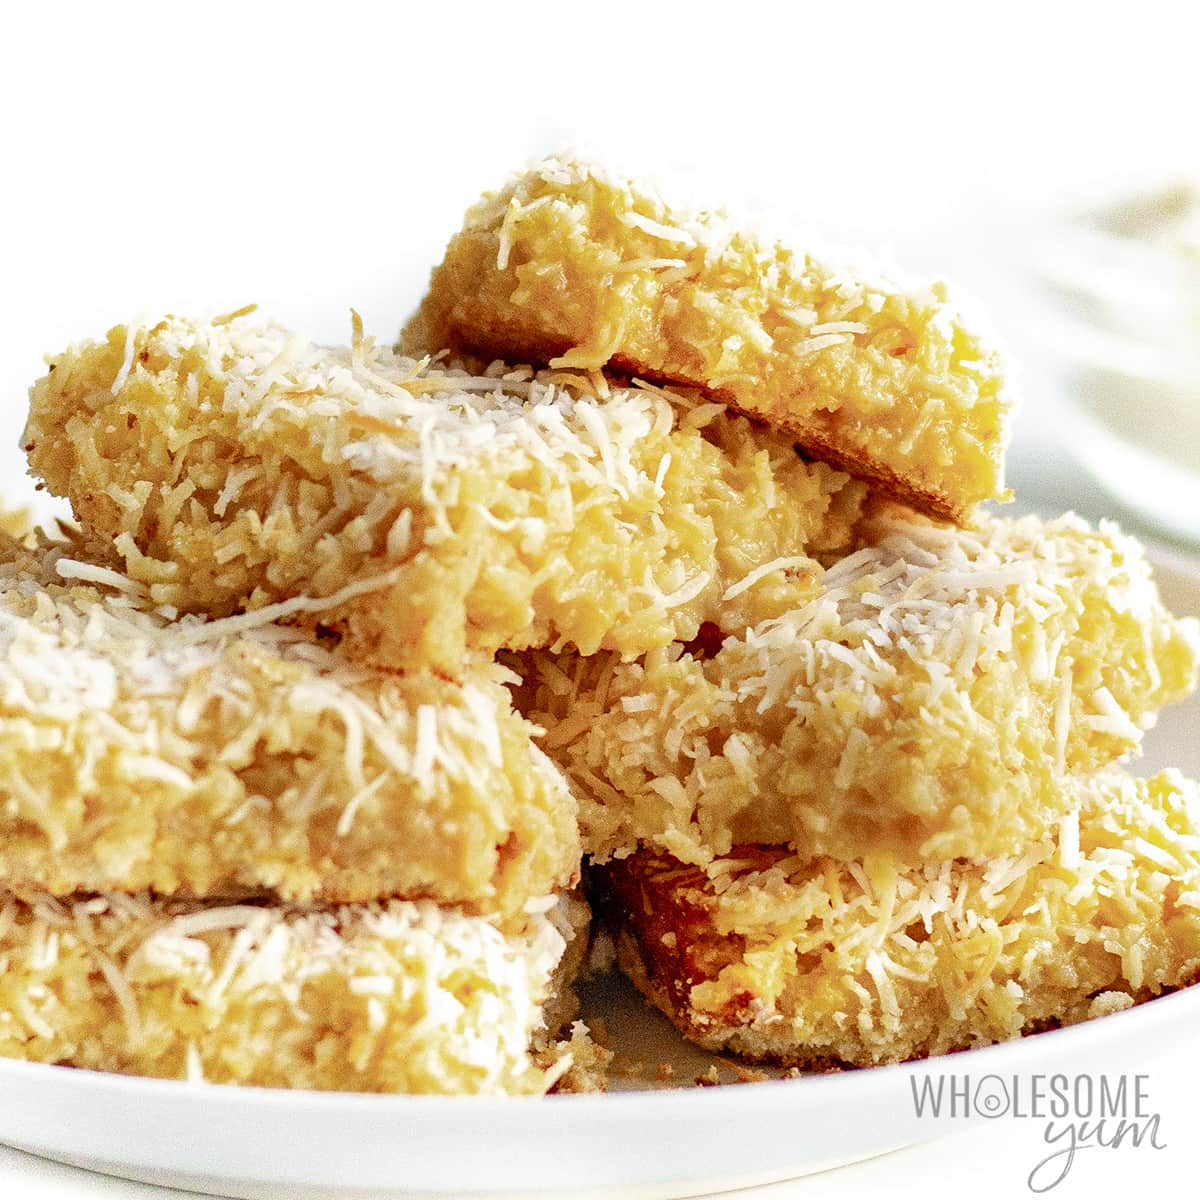 Coconut bars stacked on a plate